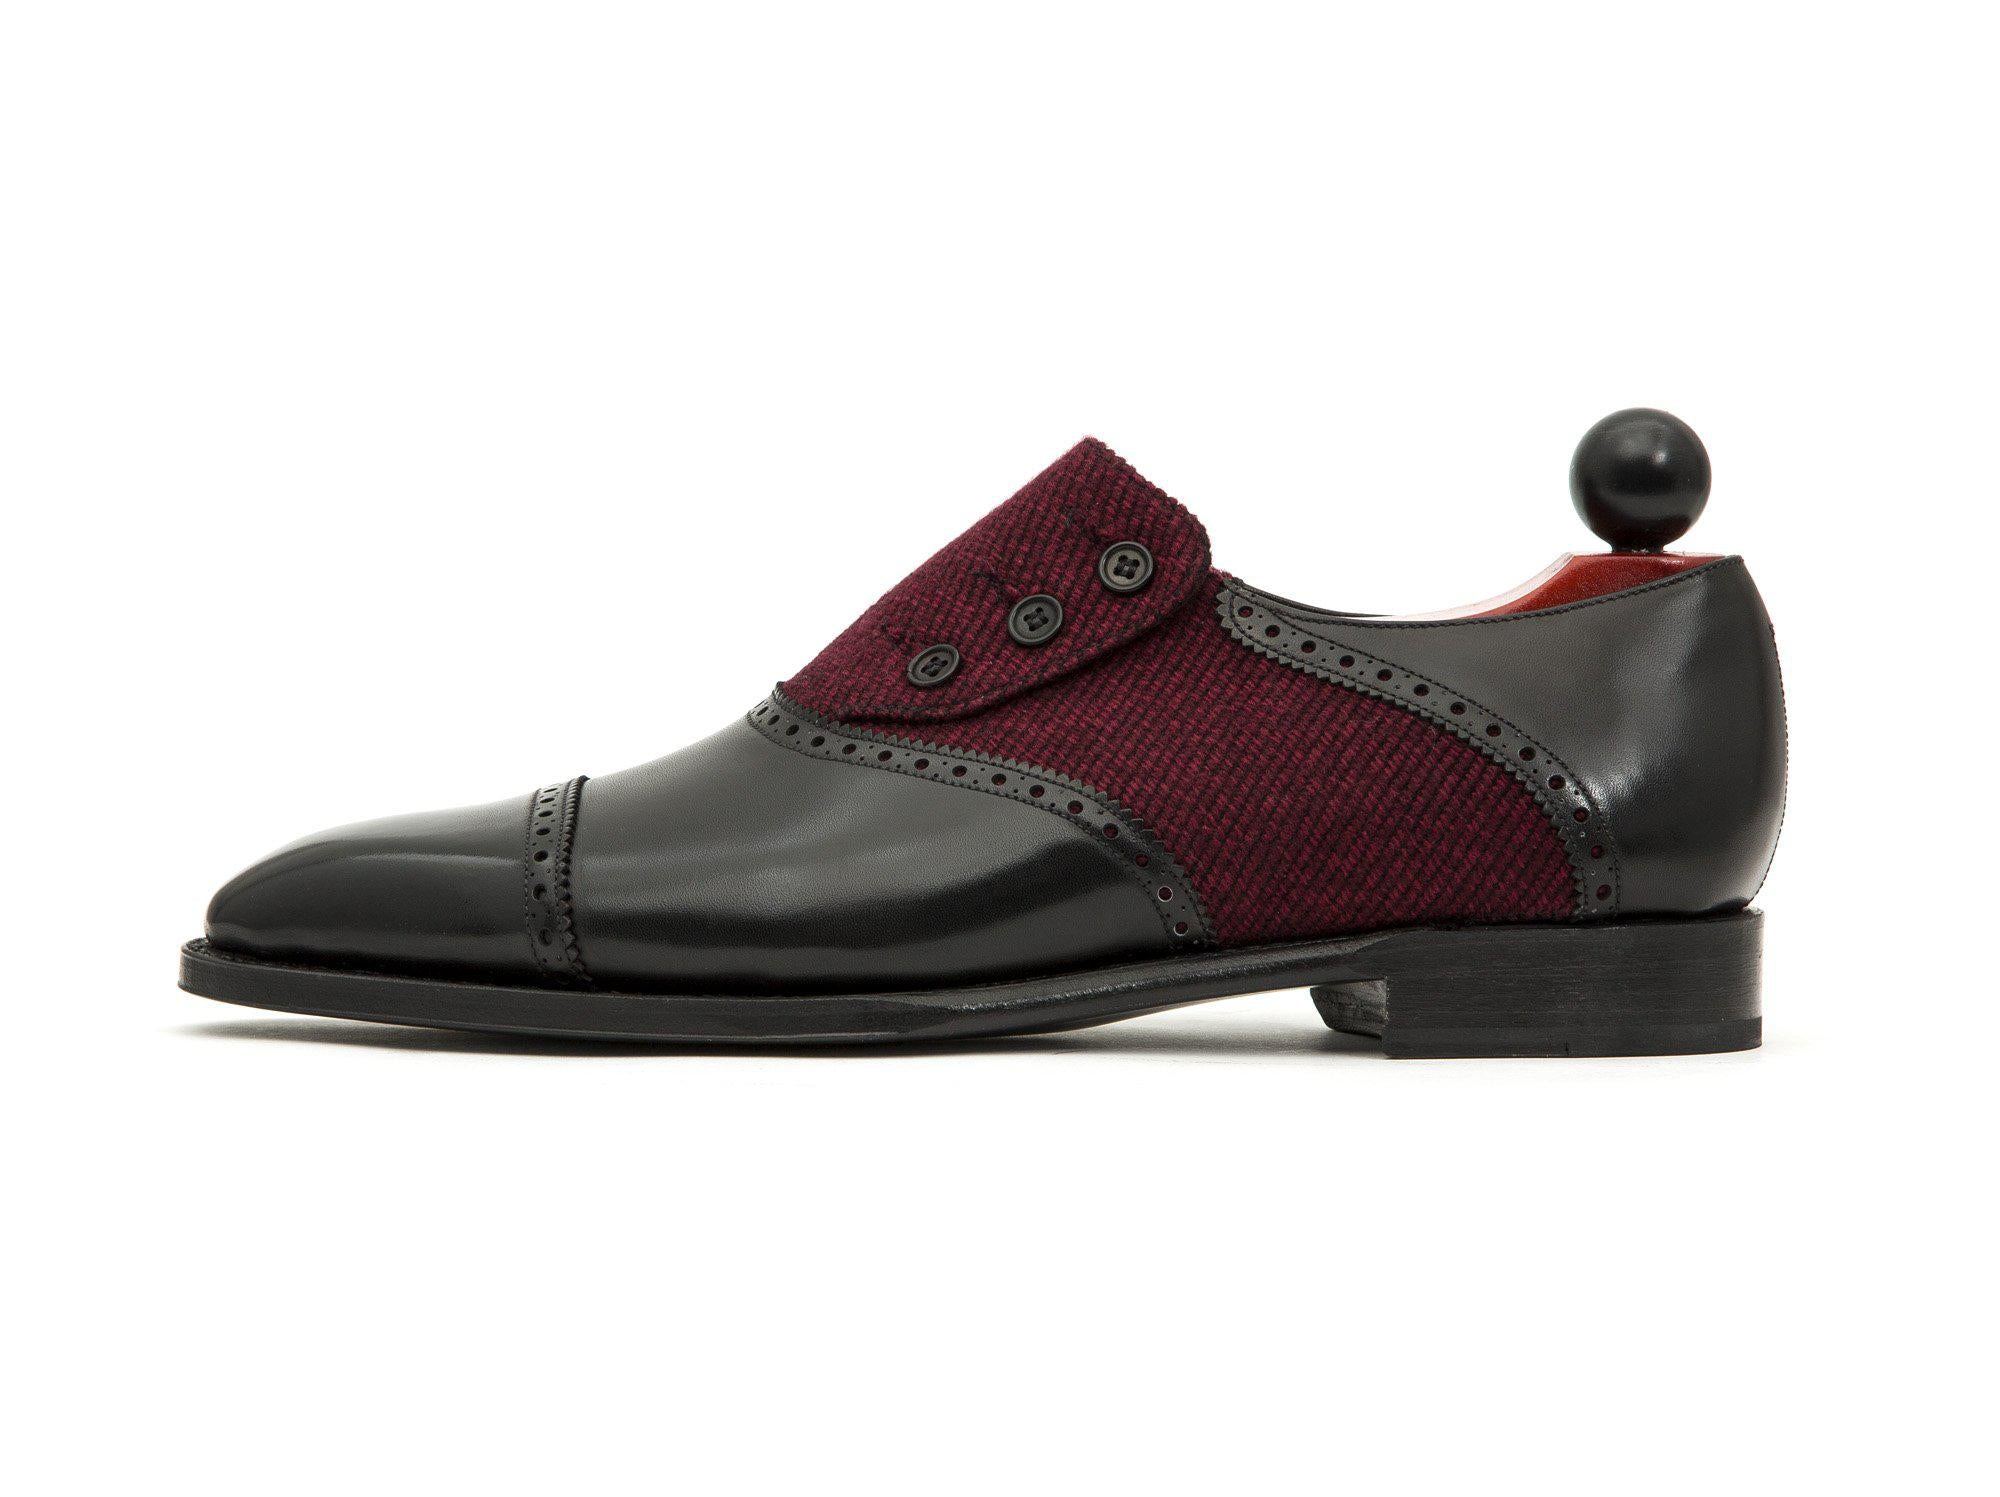 J.FitzPatrick Footwear - Cyril - Black Calf / Red Poulsbo - LPB Last